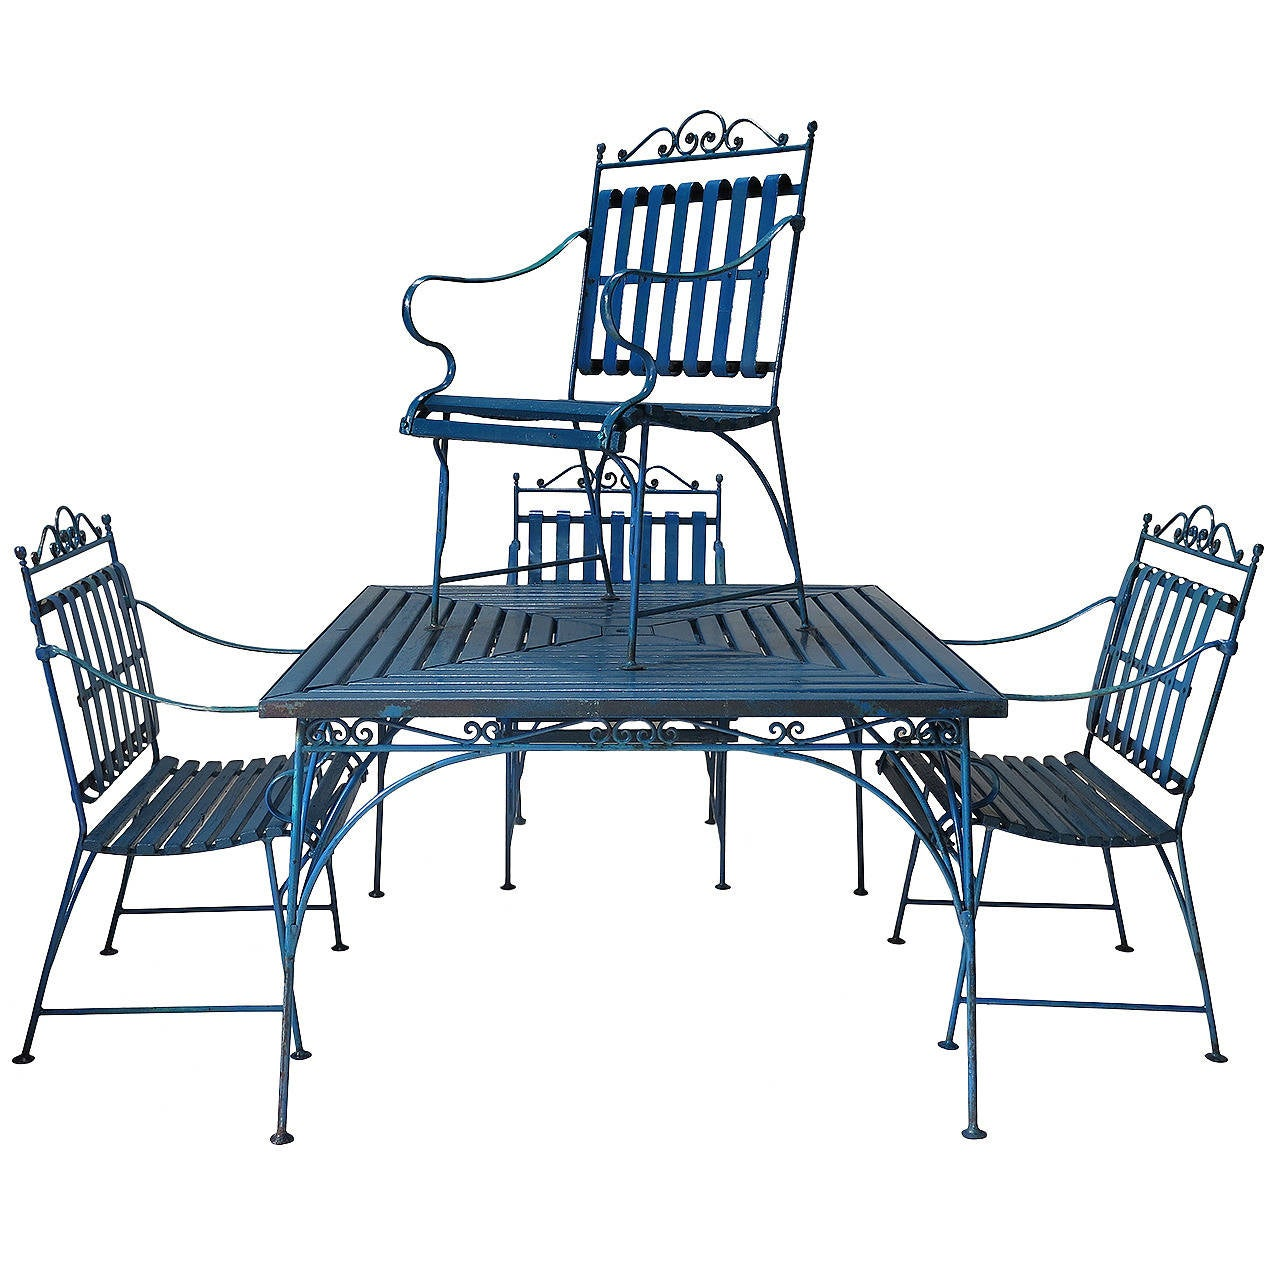 Lovely french 1930s wrought iron and wood garden table for Wrought iron garden furniture